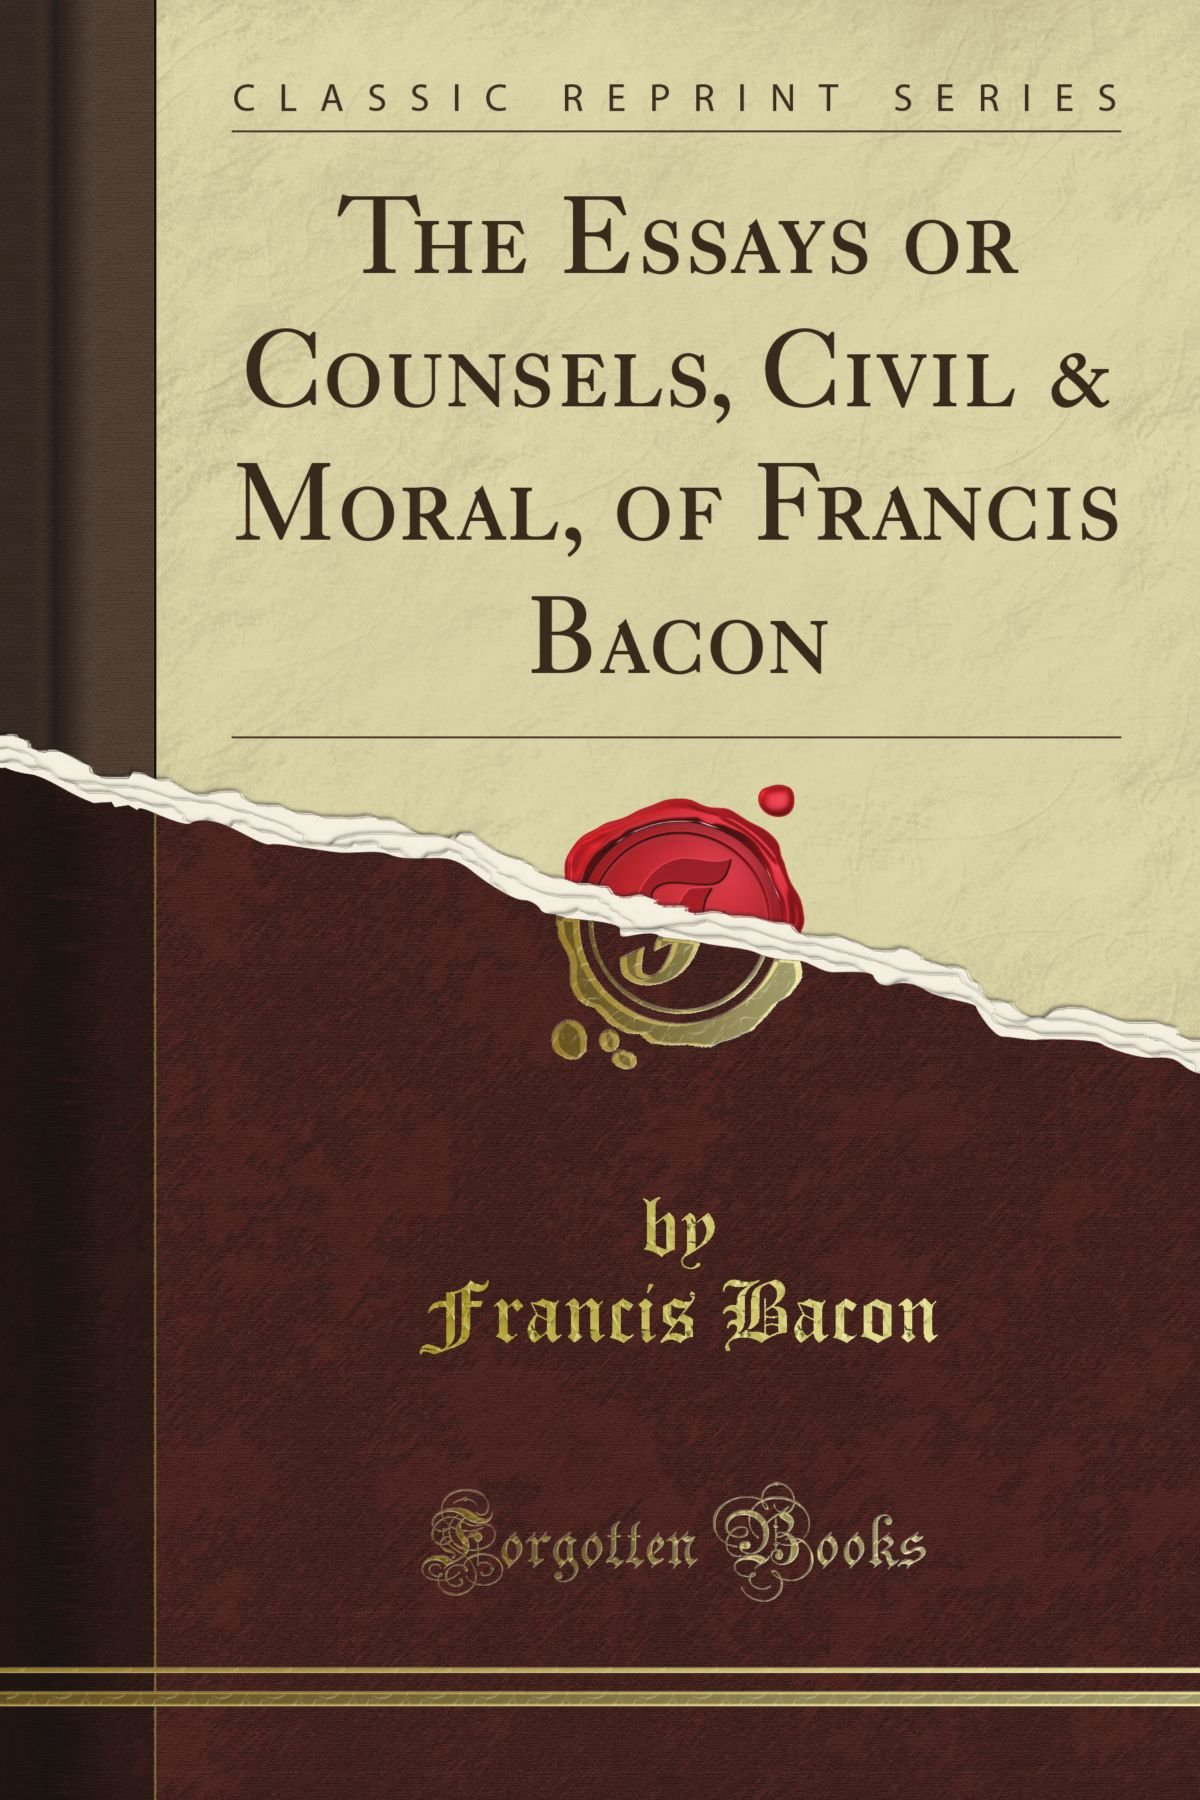 018 81jugg1lv8l Francis Bacon Essays Essay Awesome Analysis Pdf Of Truth Download Critical Appreciation Bacon's Full